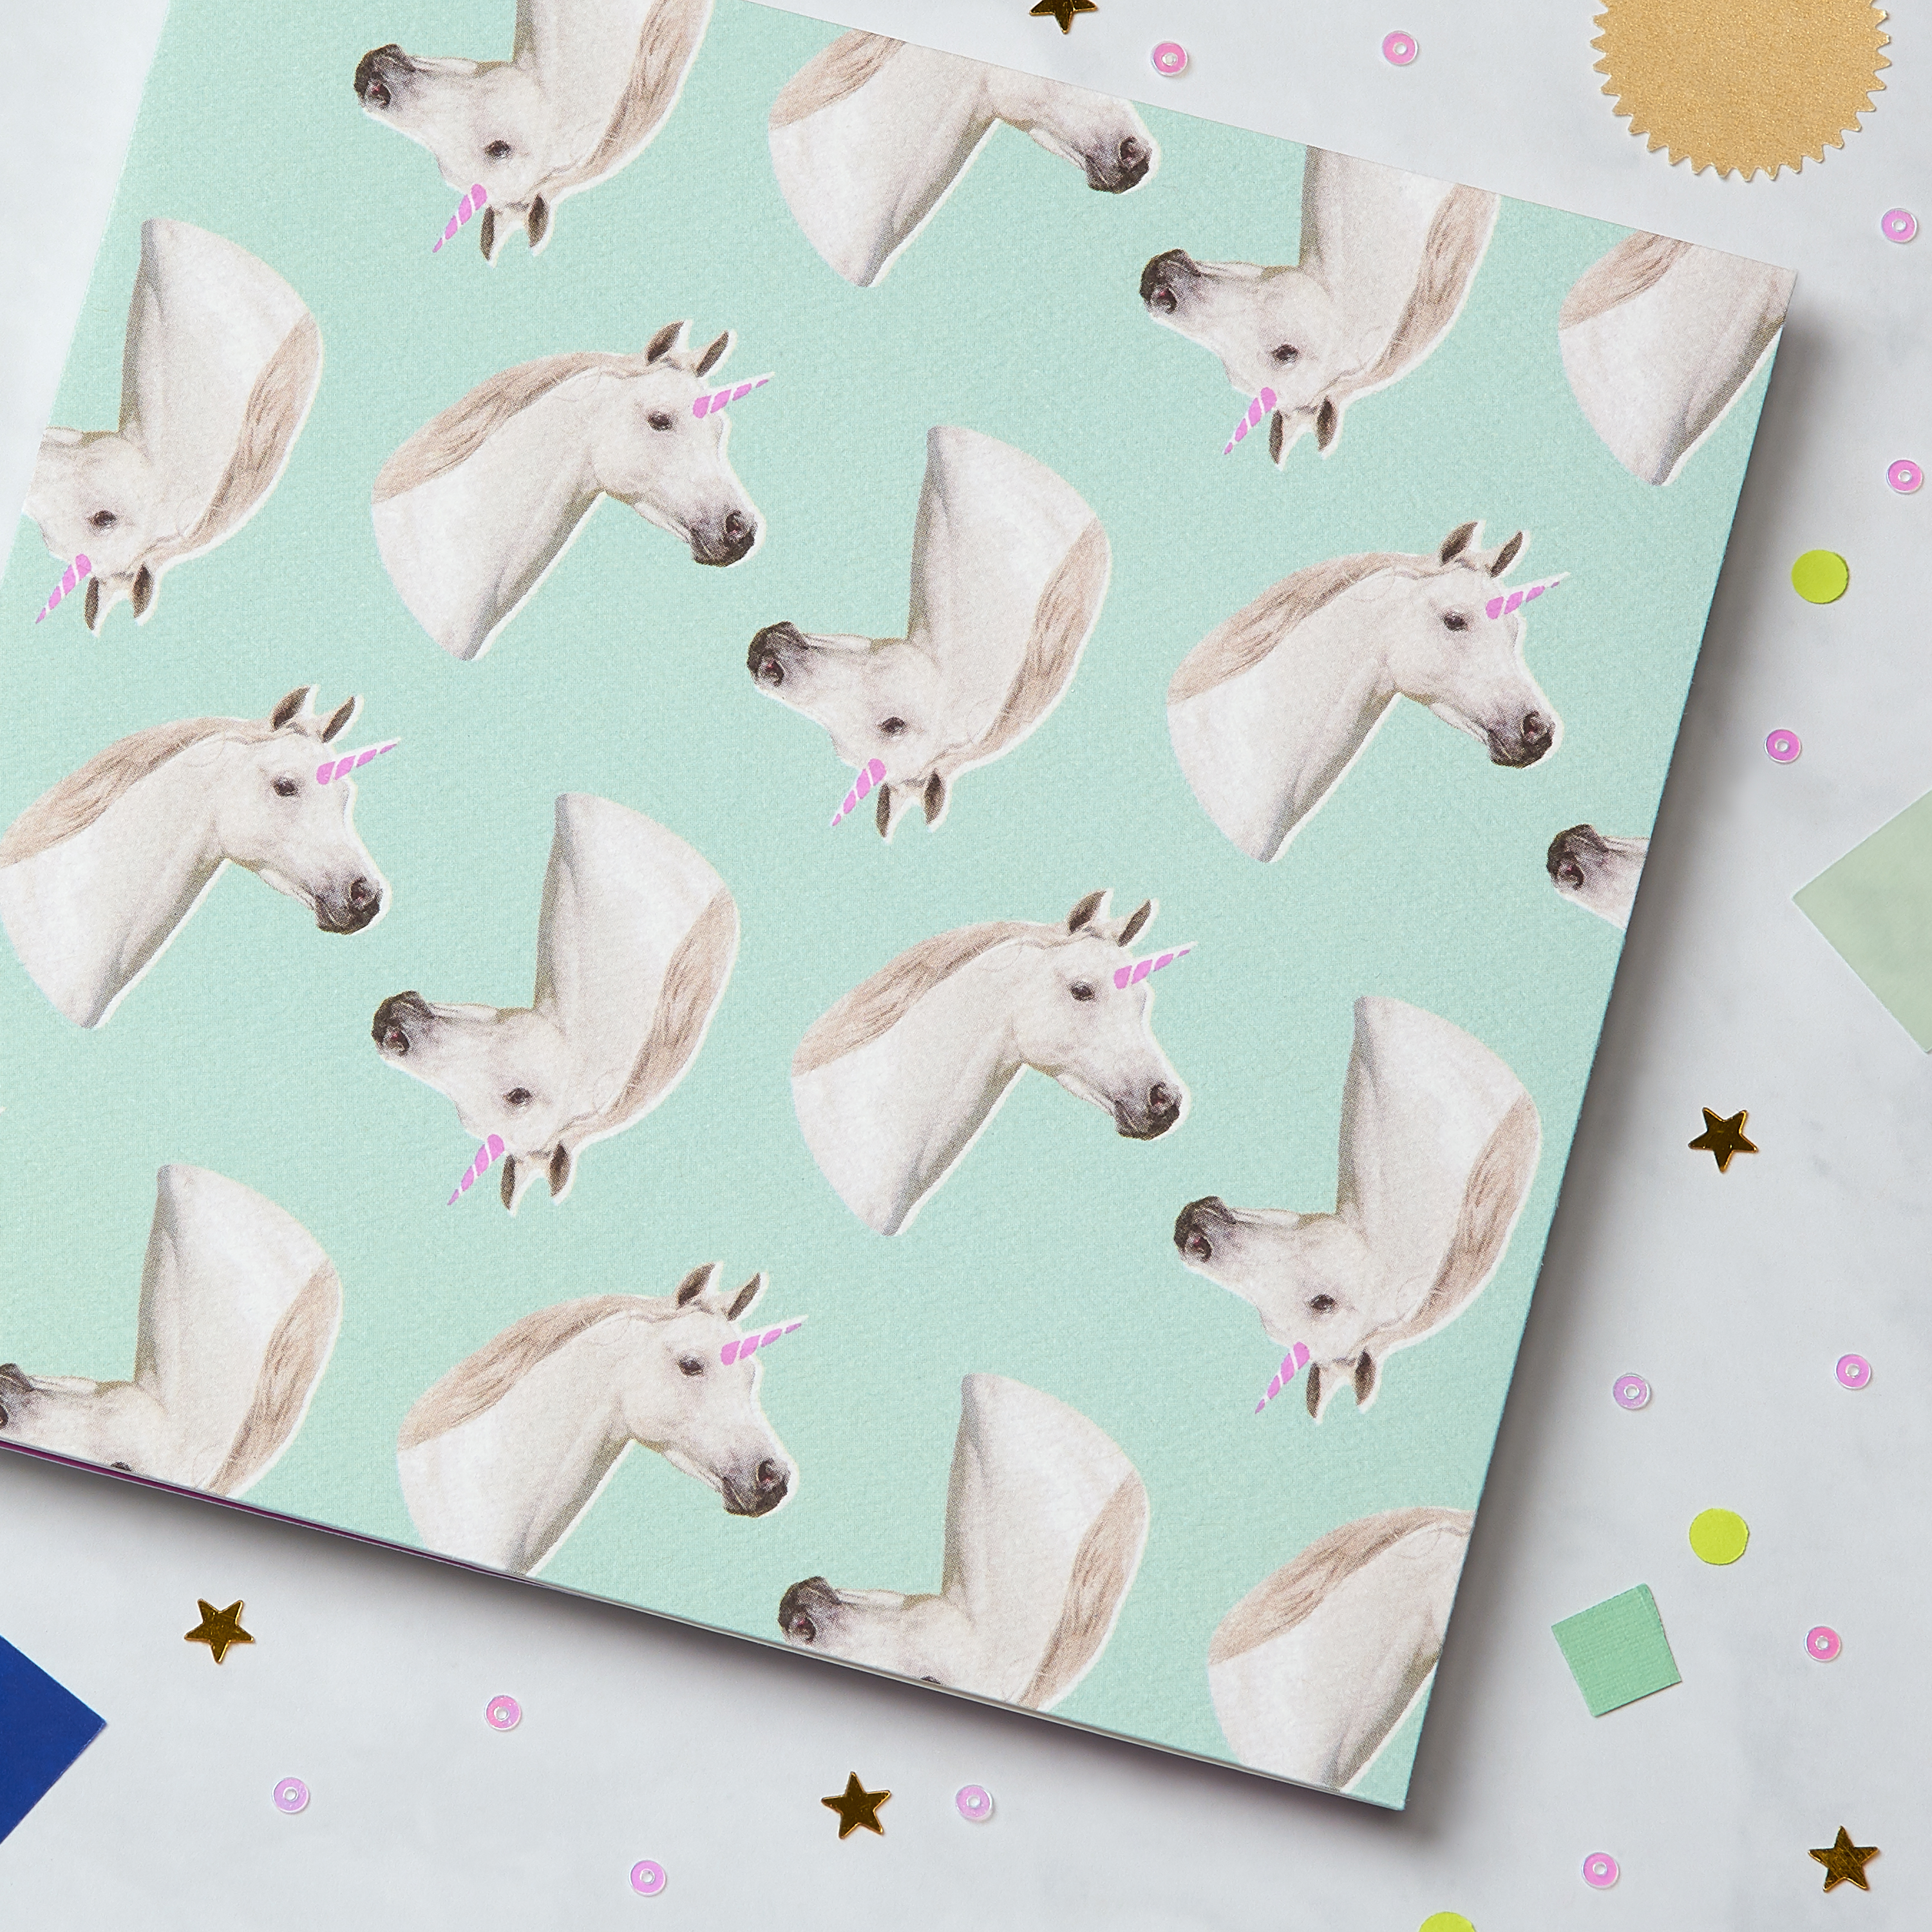 Unicorns Blank Greeting Card - Birthday, Friendship, Thinking of You image